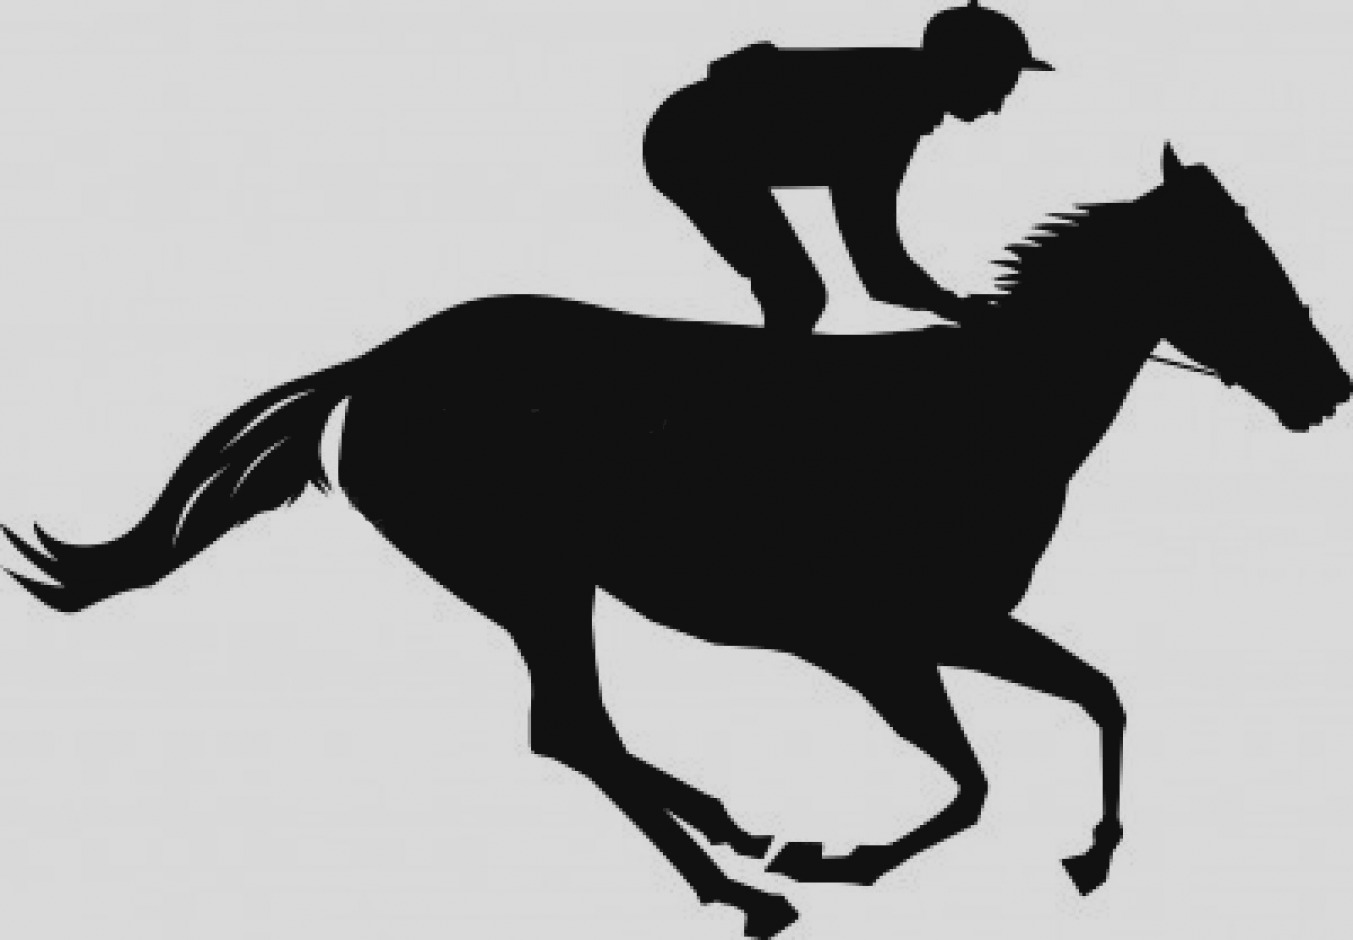 2016 clipart kentucky derby, 2016 kentucky derby Transparent.